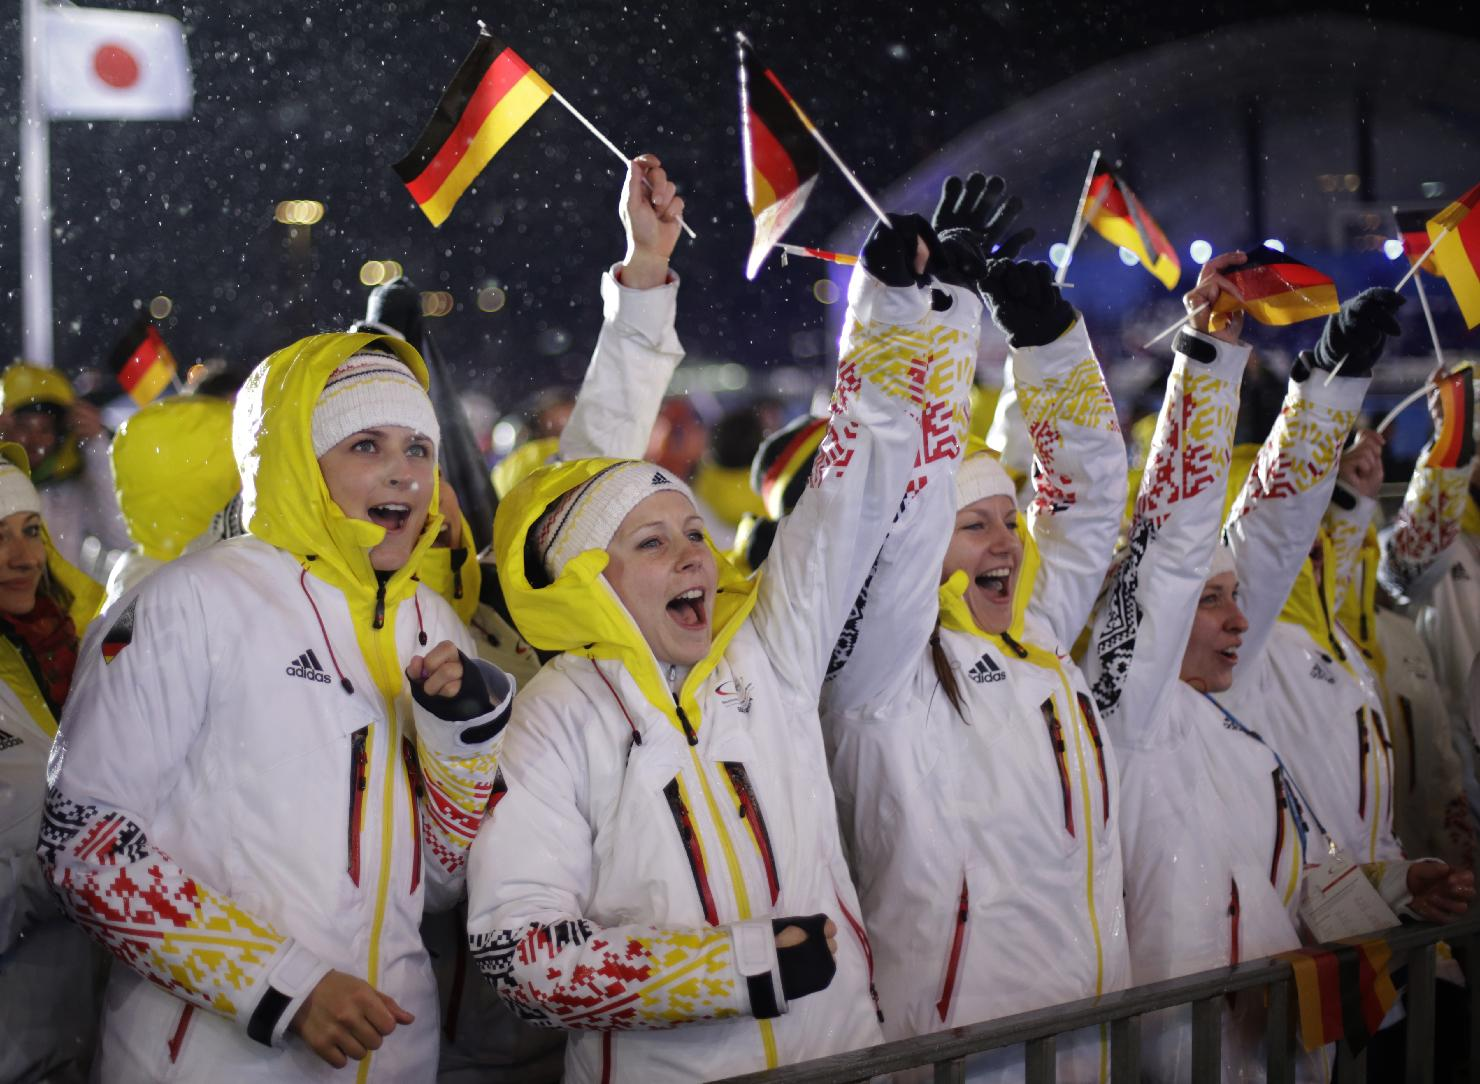 German athlete fails doping test, 1st case of the 2014 Olympics